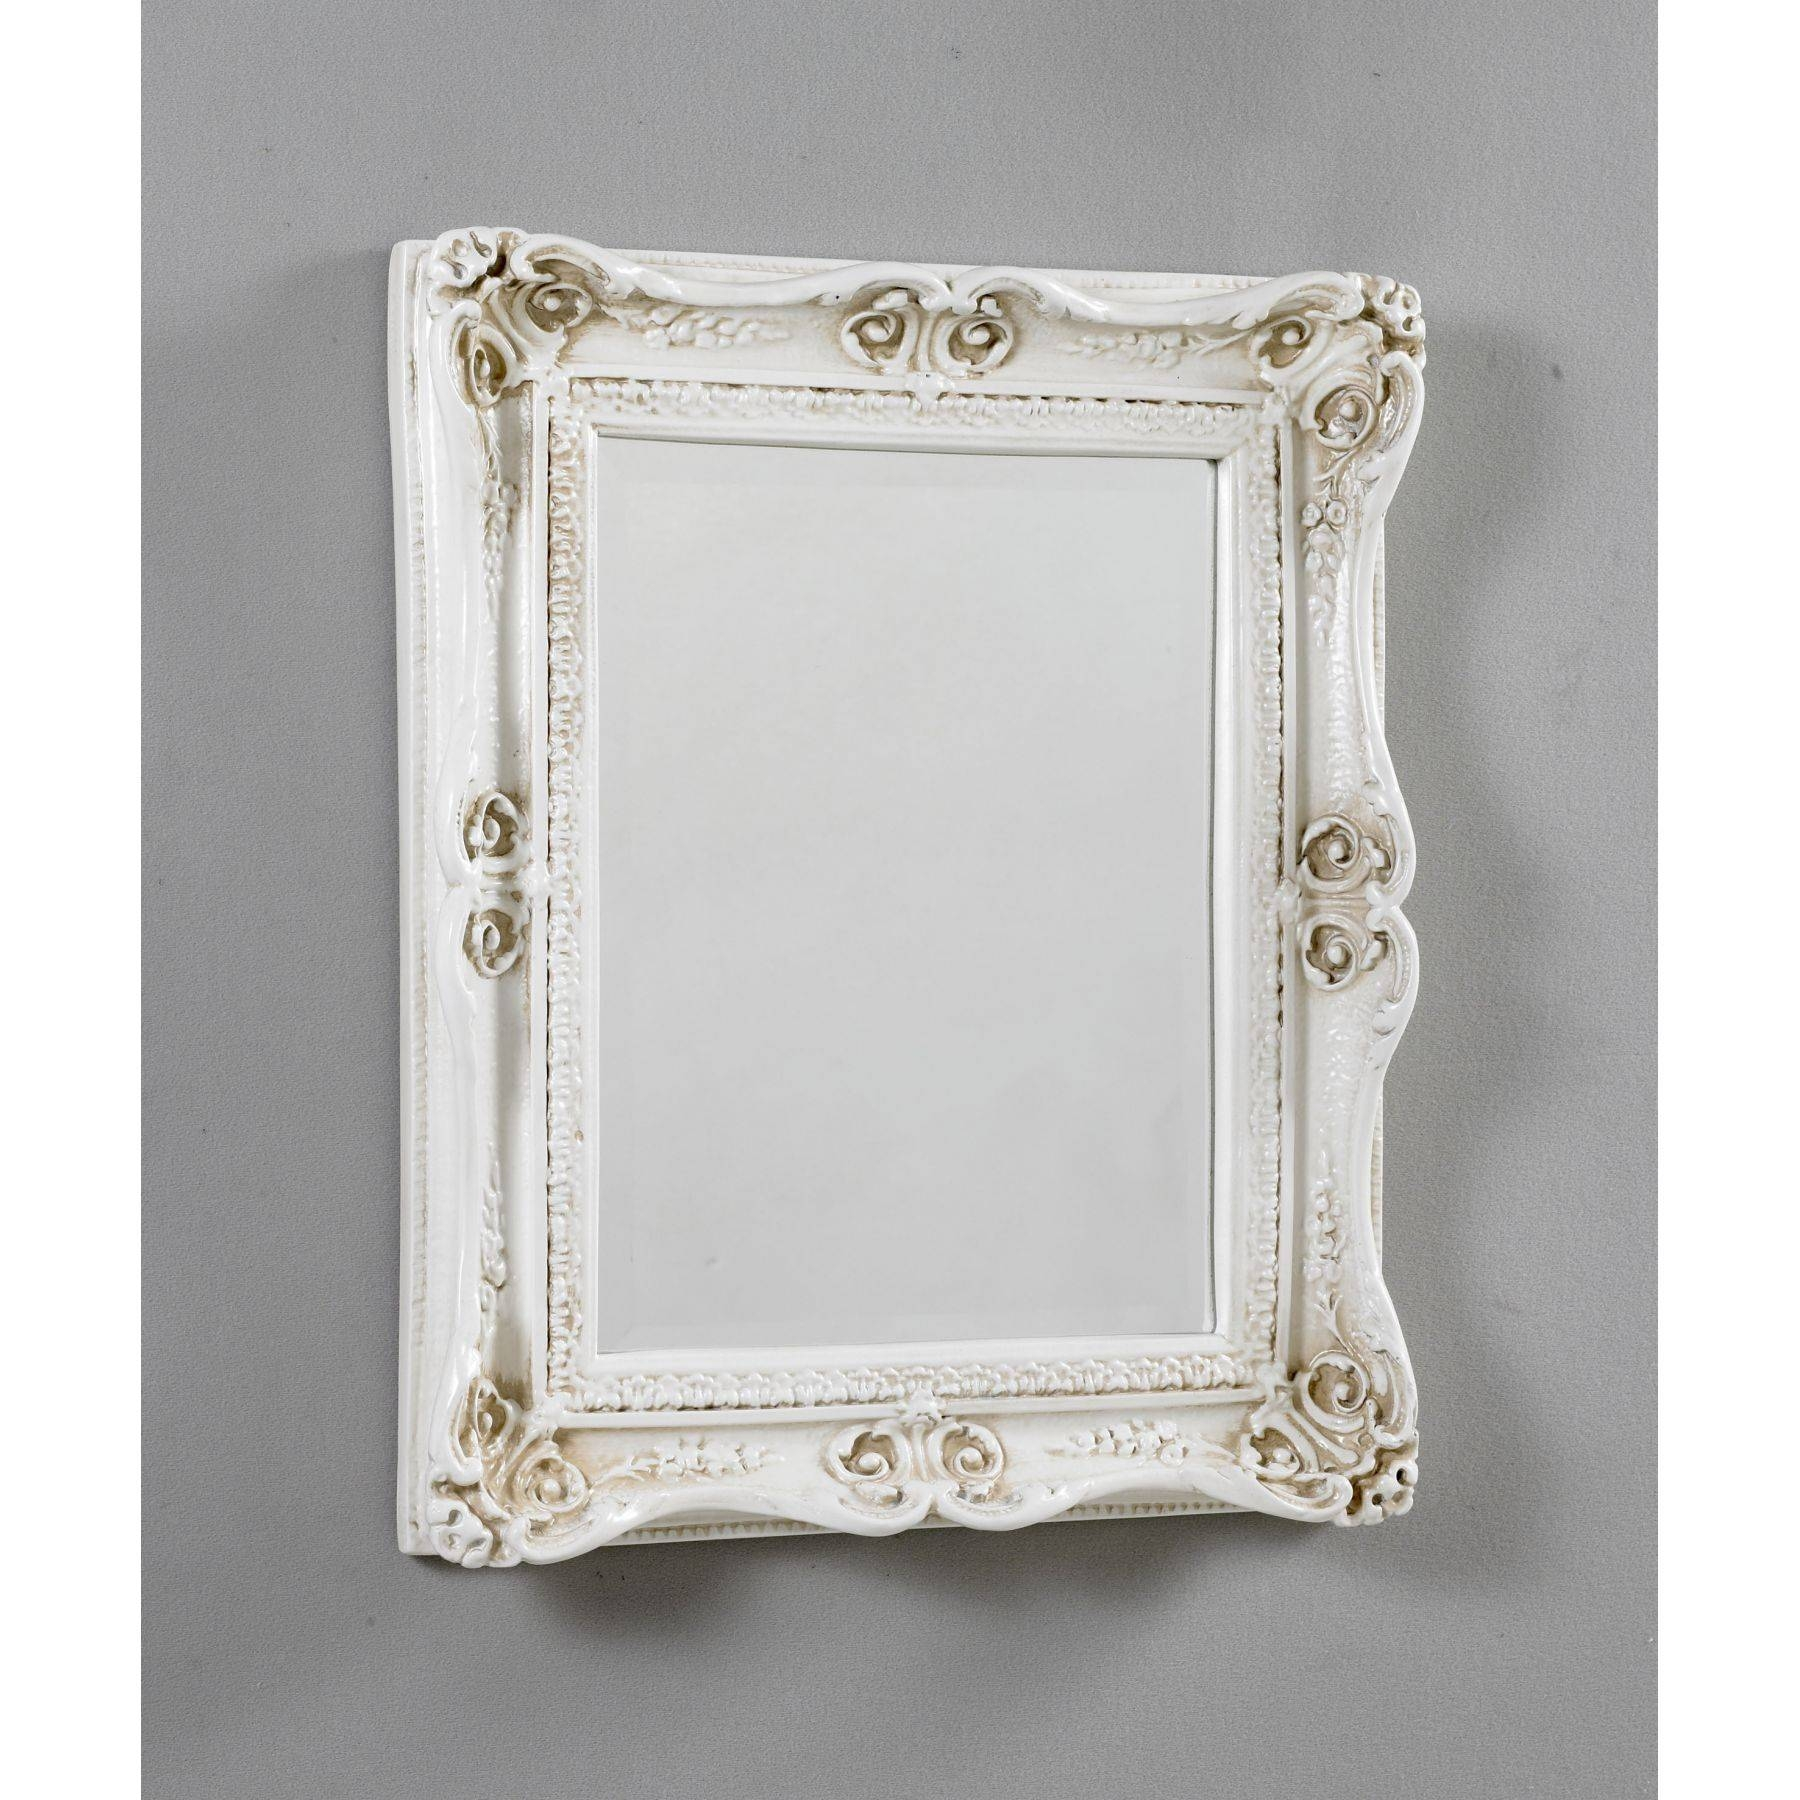 Old Mirrors For Sale 64 Breathtaking Decor Plus Large French regarding White French Mirrors (Image 17 of 25)